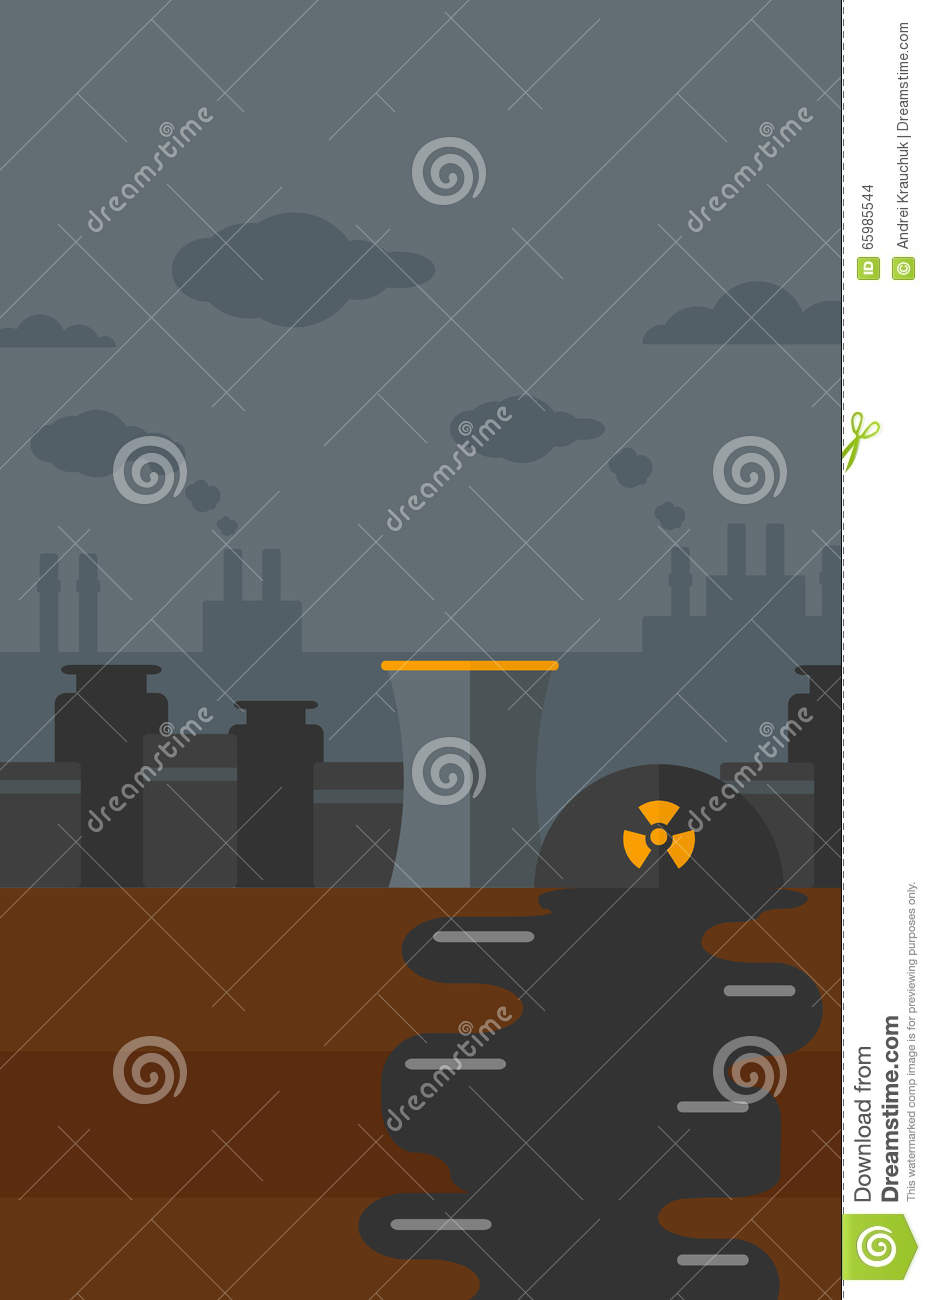 Background Of Nuclear Power Plant Stock Vector Illustration Layout Images Flat Design Vertical